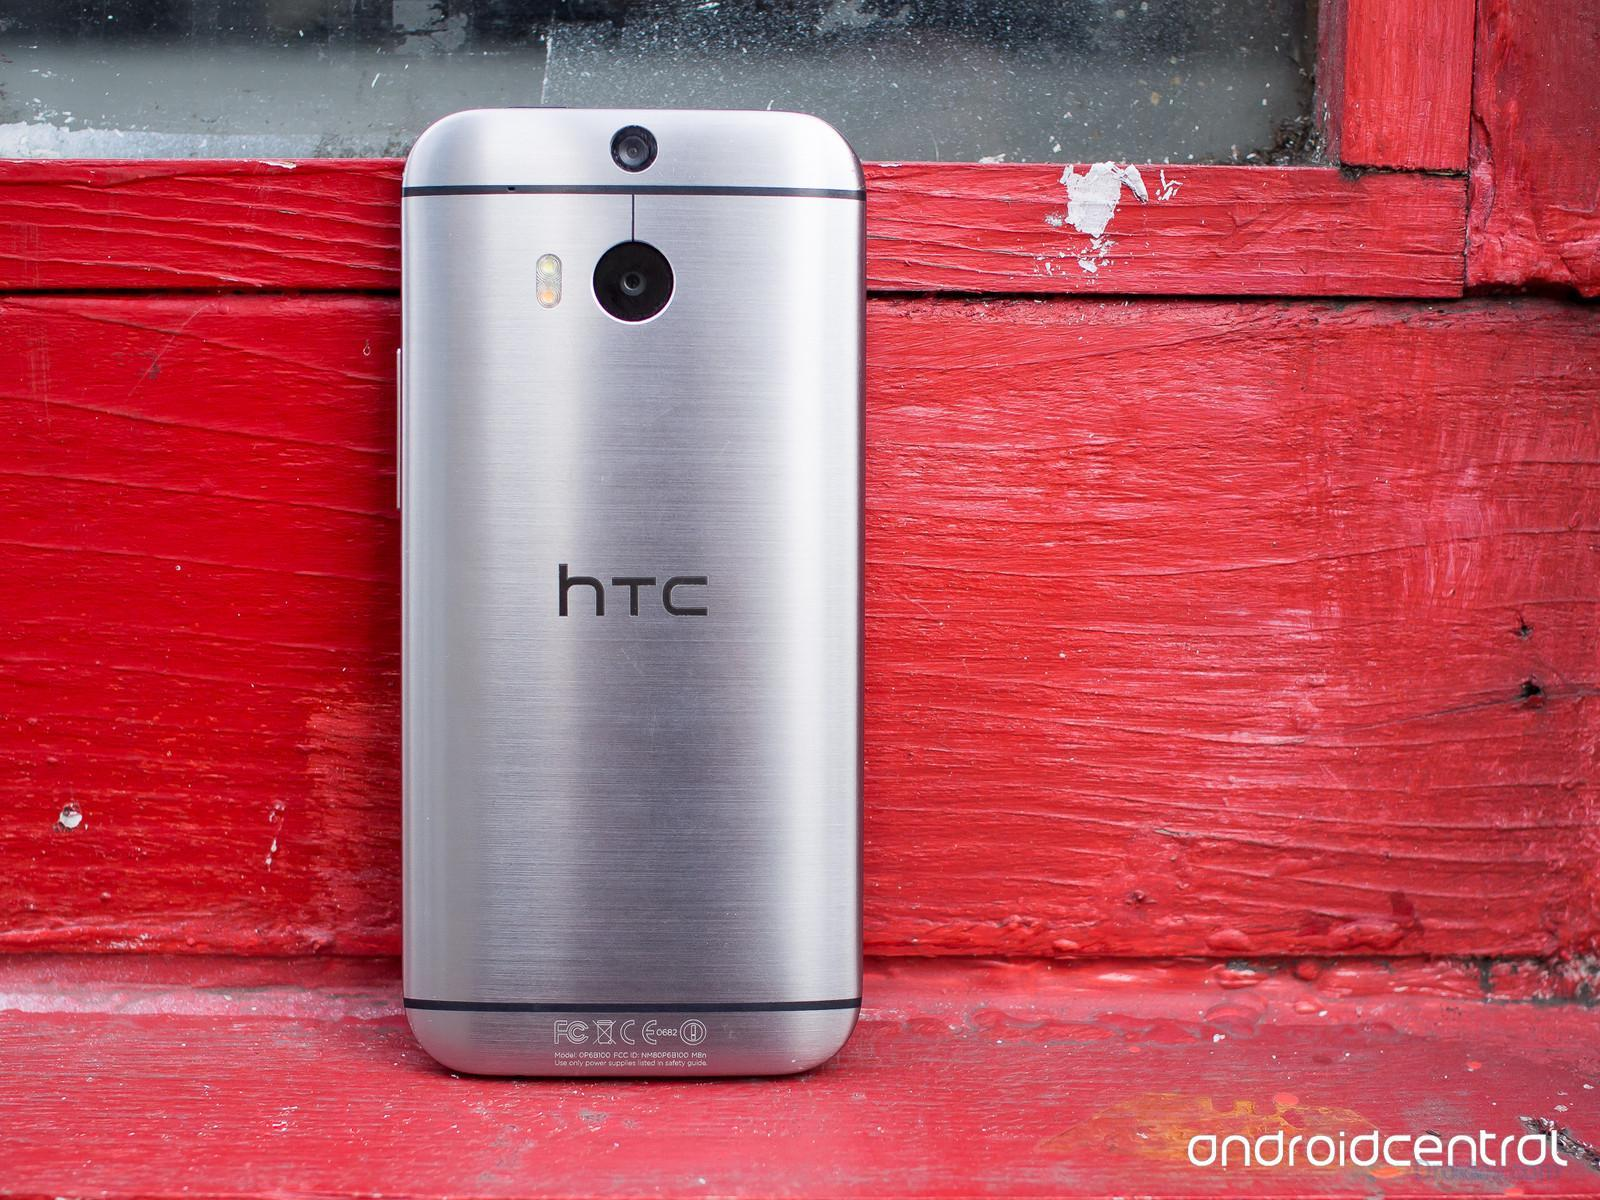 htc-one-m8-one-year-hero